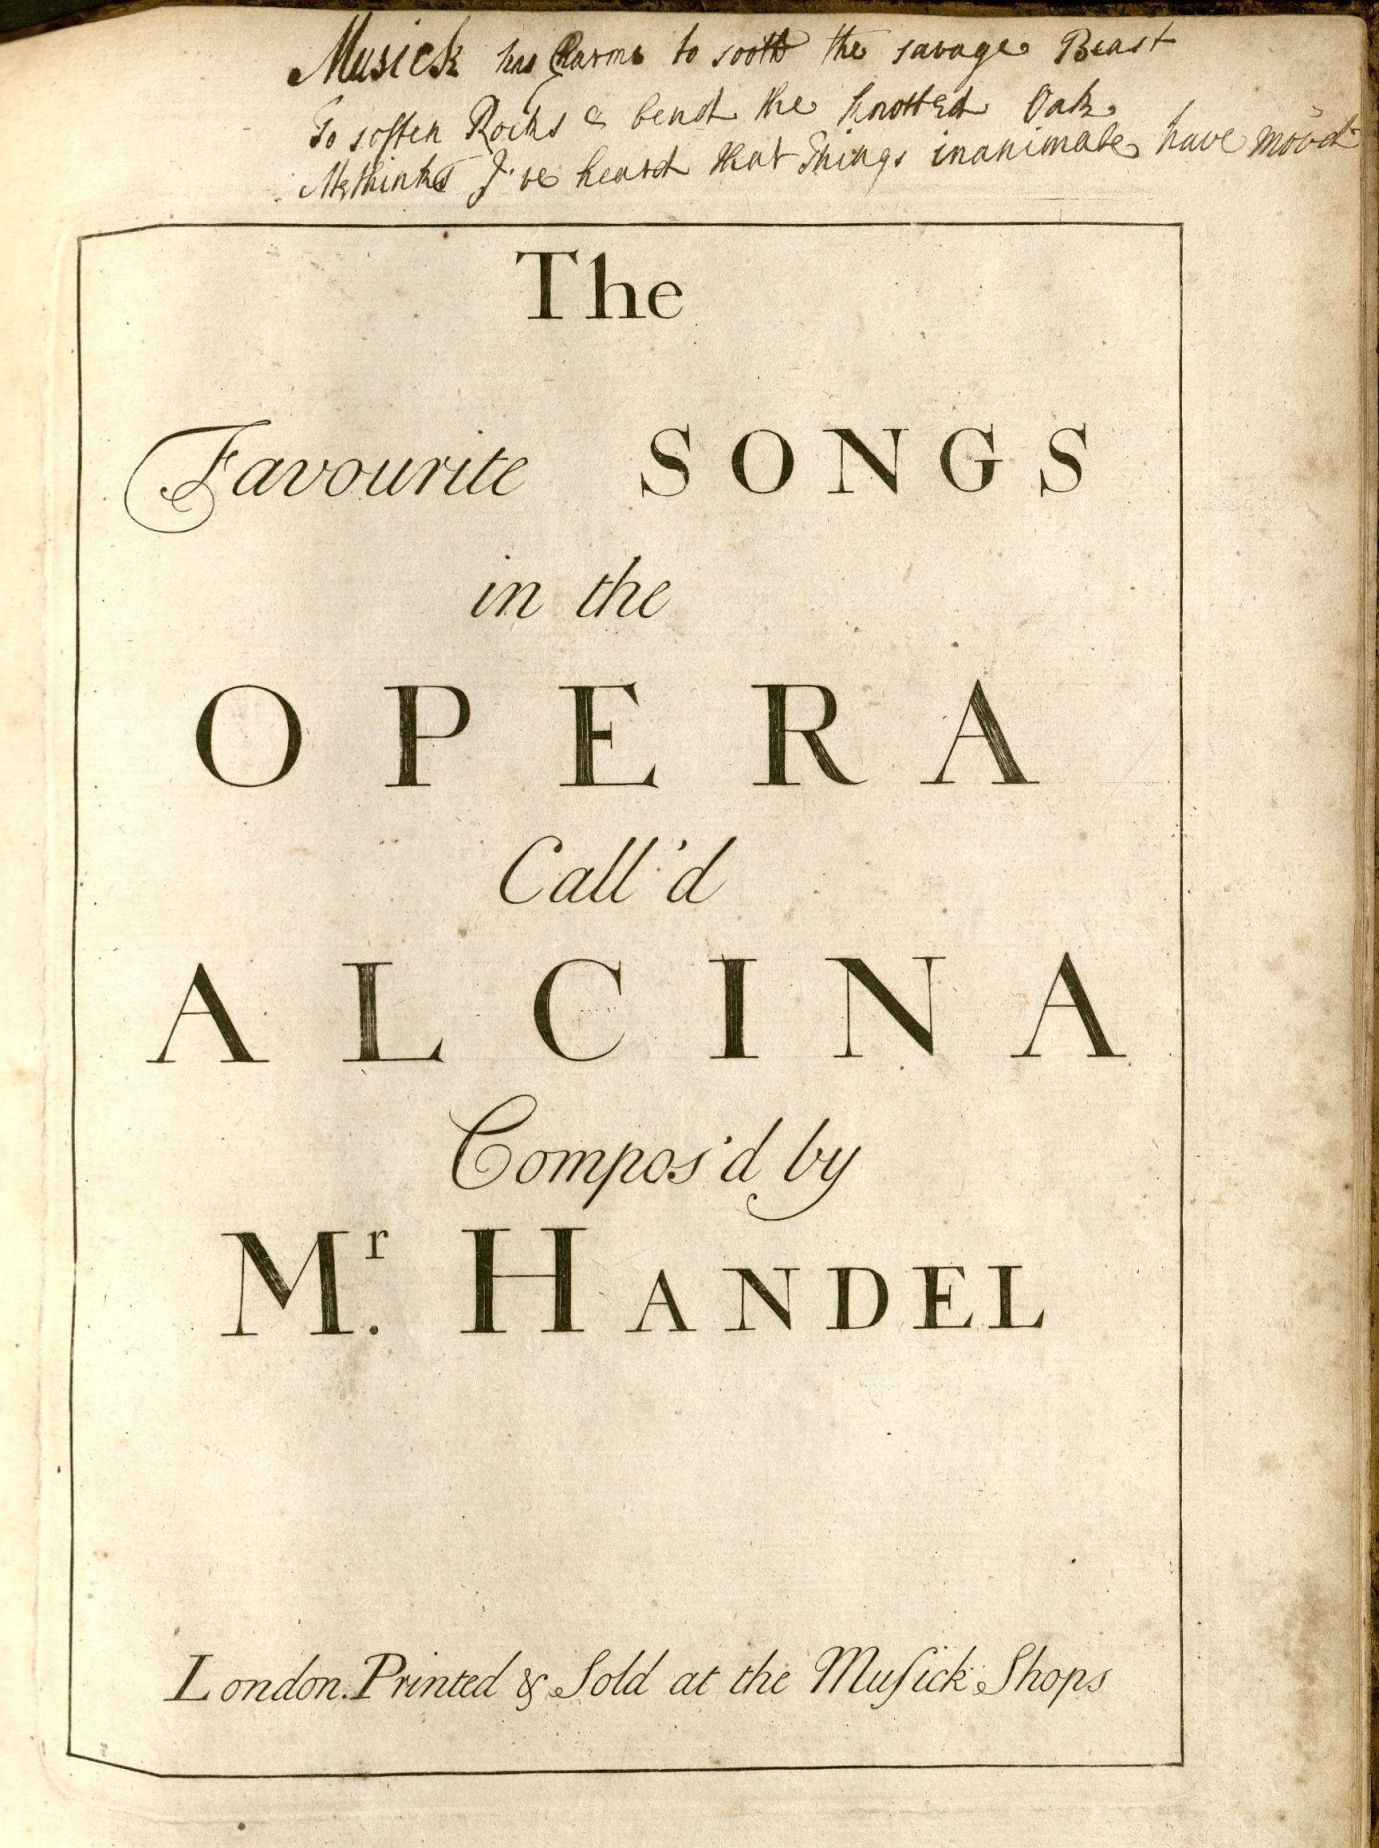 The Songs of Handel's Alcina - Published 1735